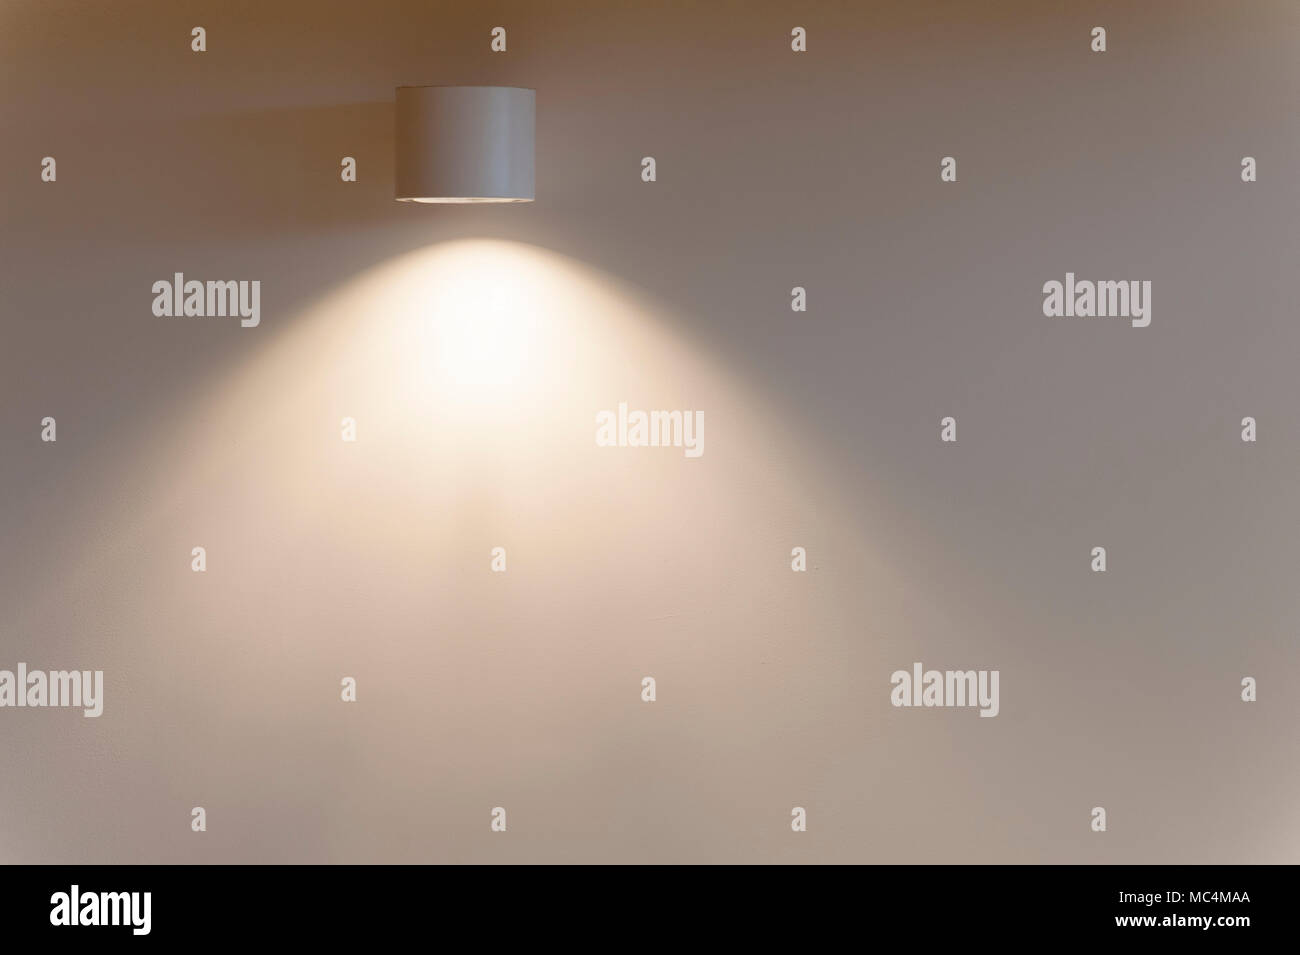 A directional light fixture on a wall casts a soft light on a bare wall. - Stock Image